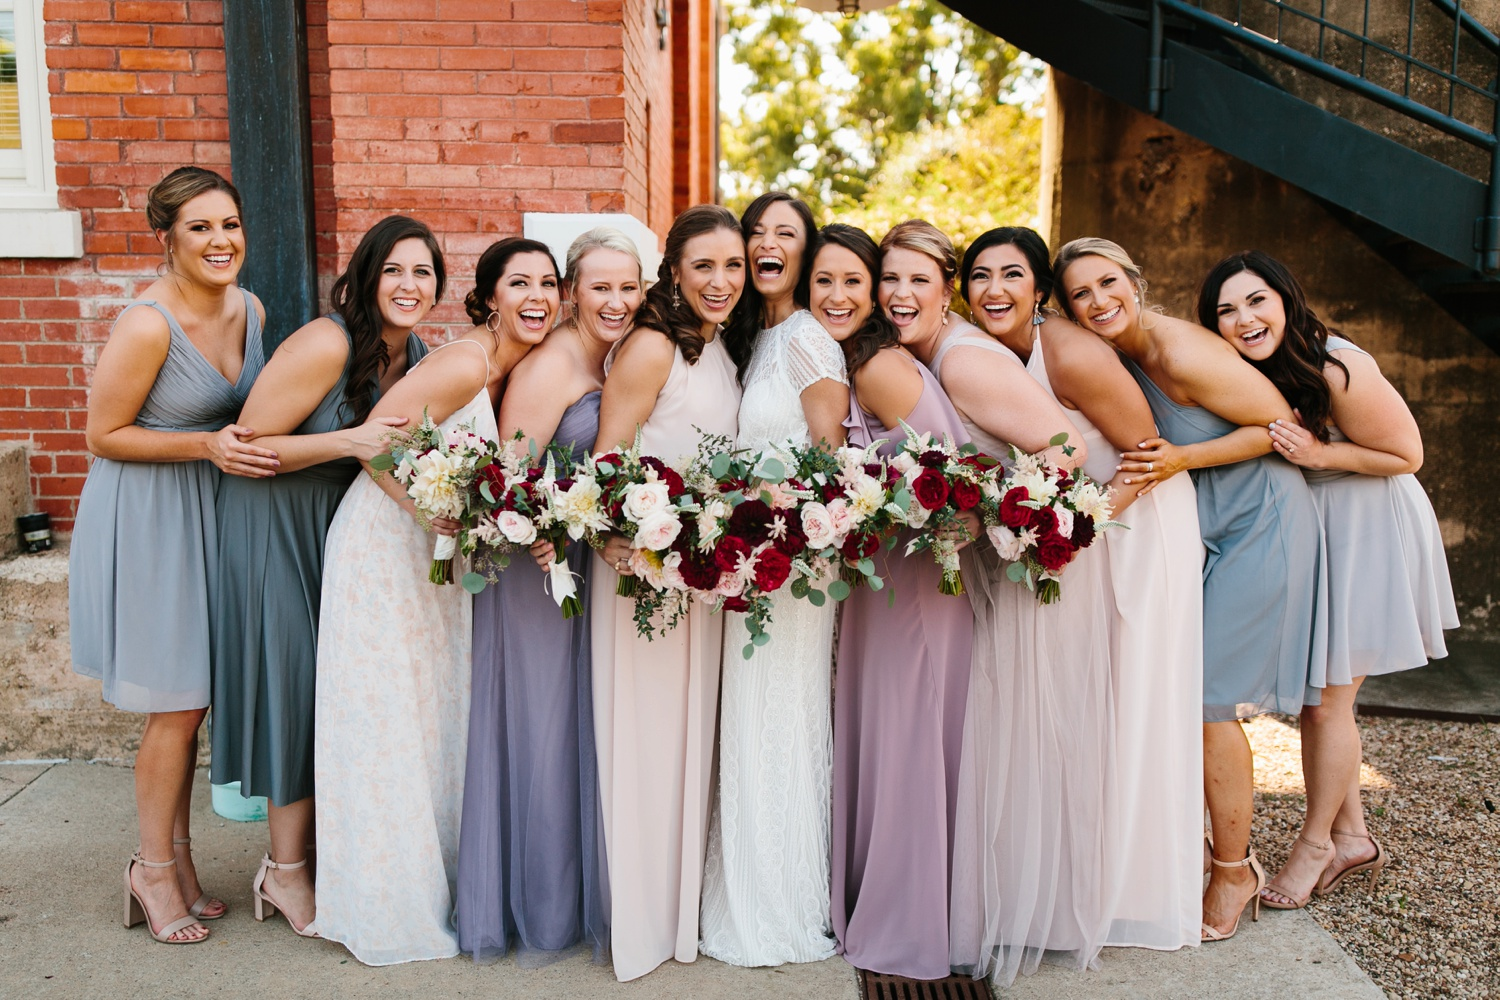 Kadee + Tyler | a raw, emotional wedding at the Filter Building on White Rock Lake in Dallas, TX by North Texas Wedding Photographer, Rachel Meagan Photography 094